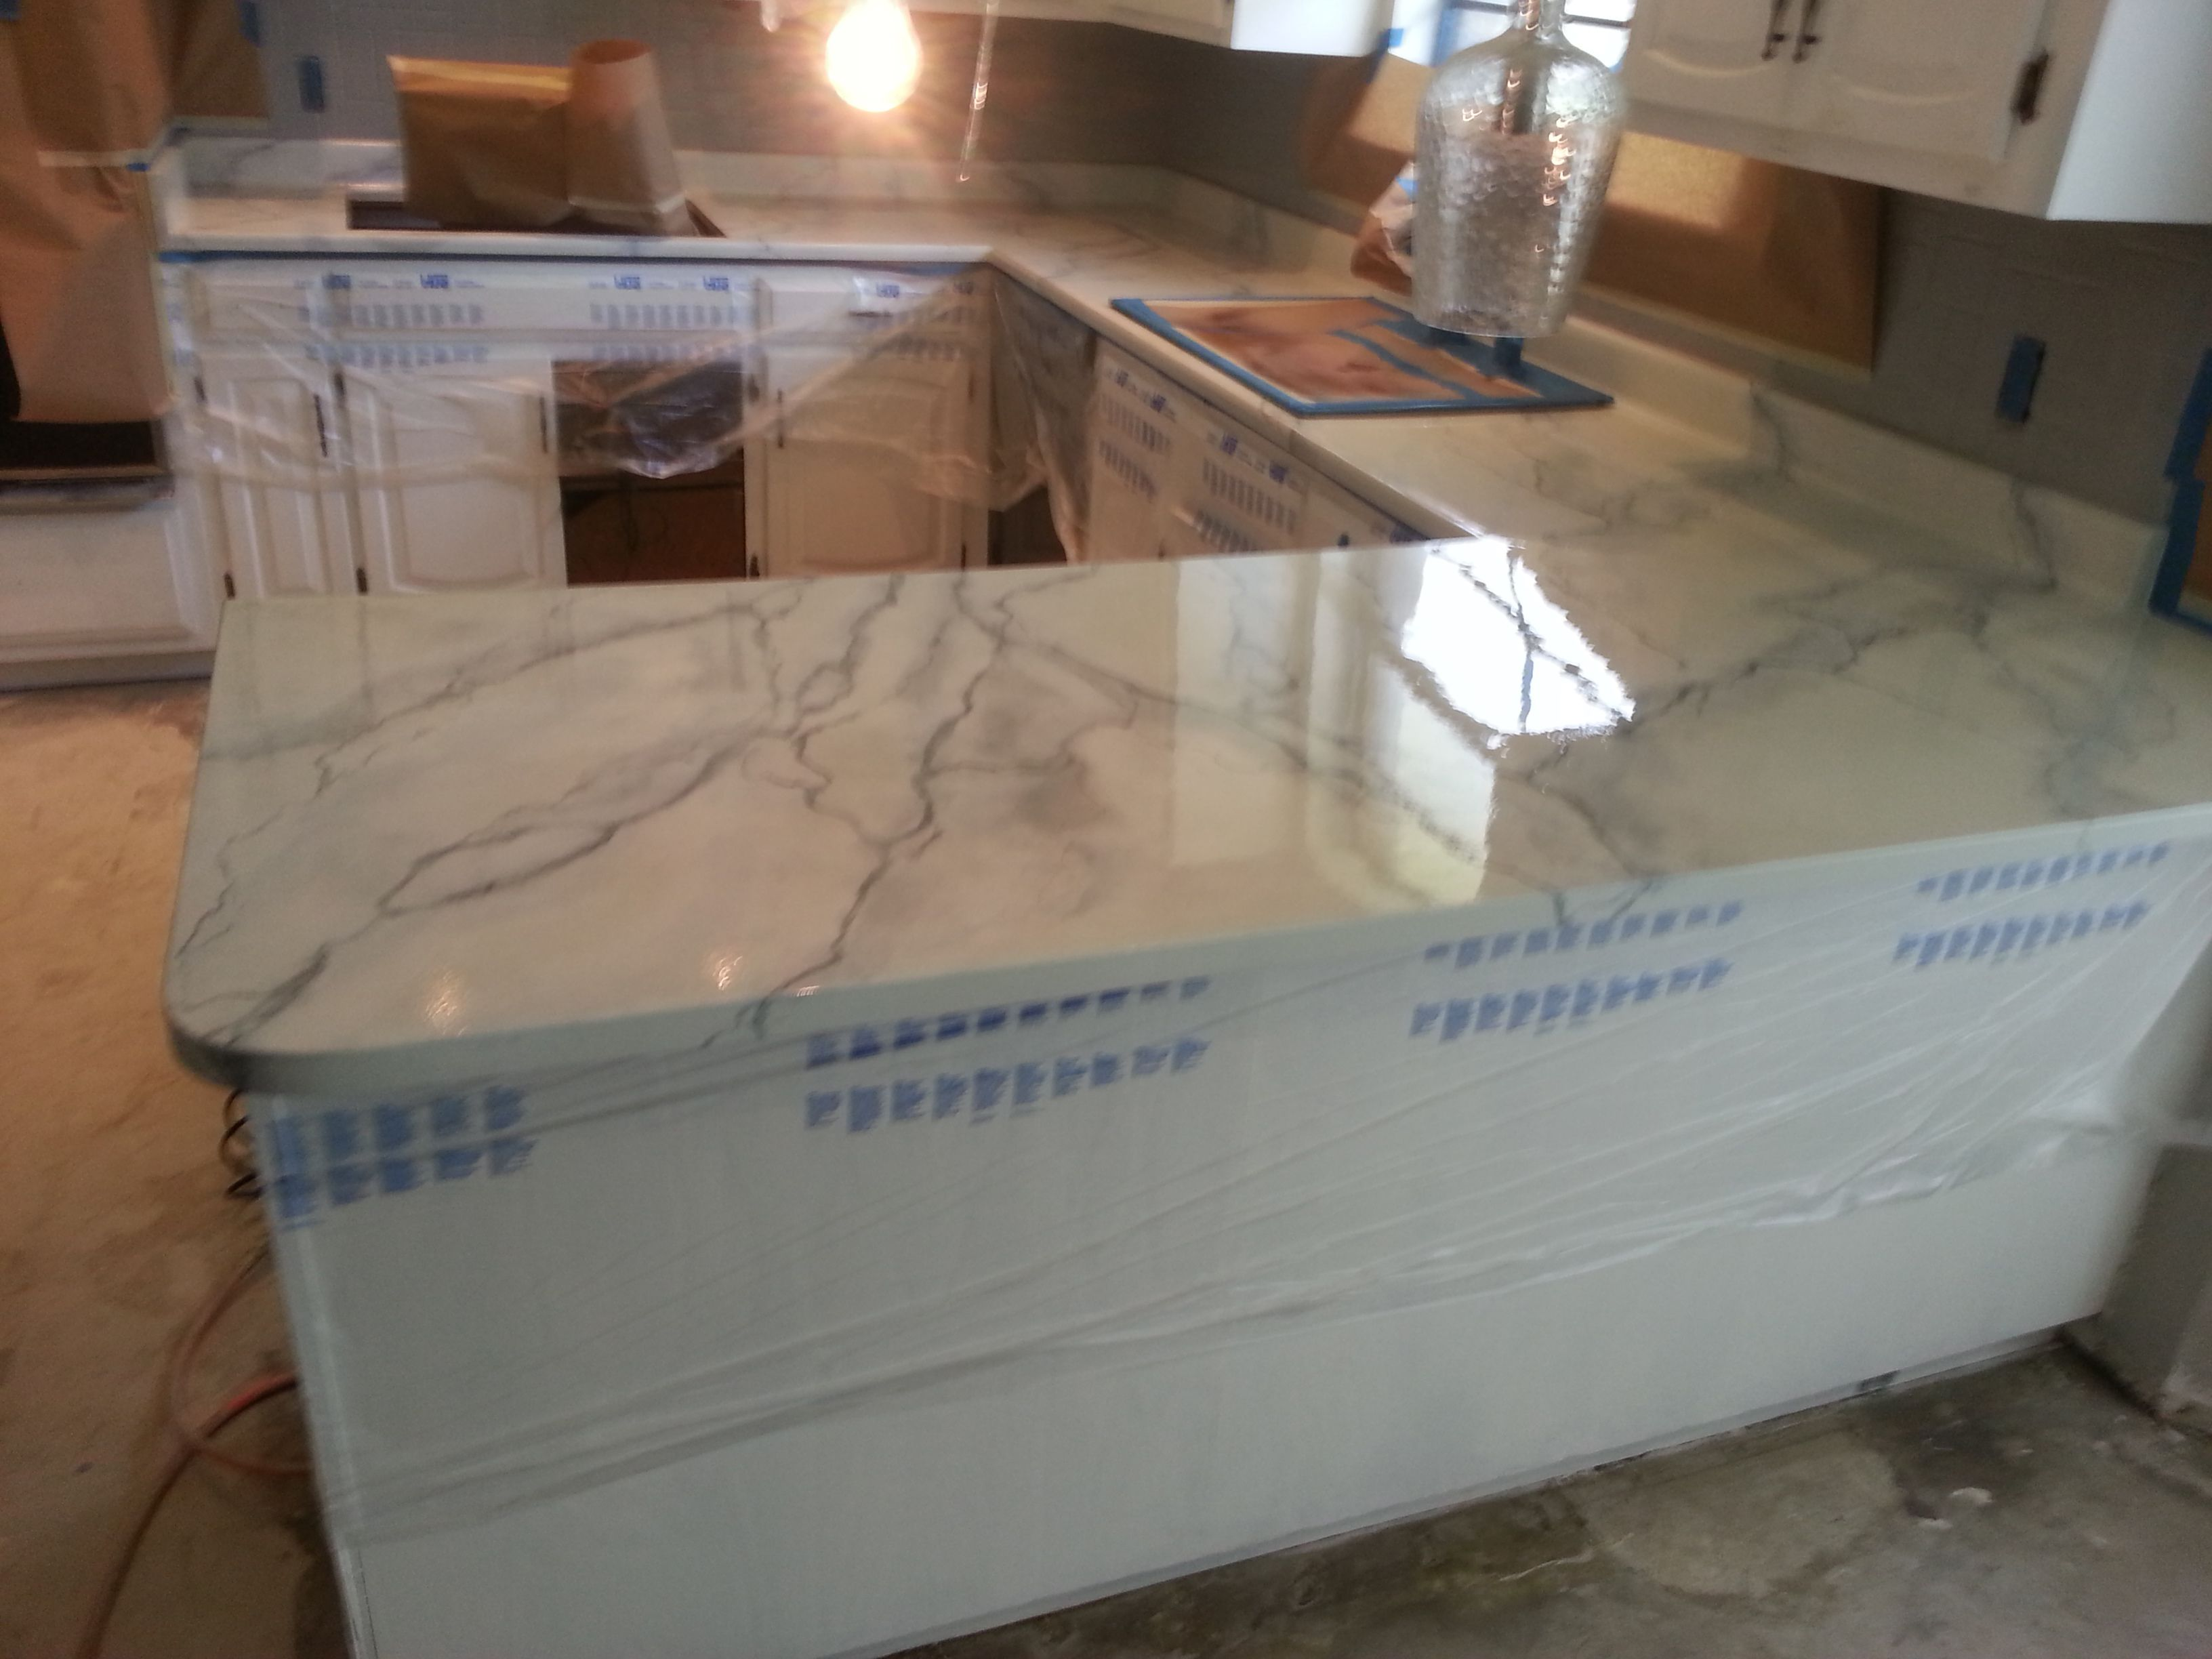 How To Repair Marble Countertops Laminate Counter Tops After Resurfaced To Look Like